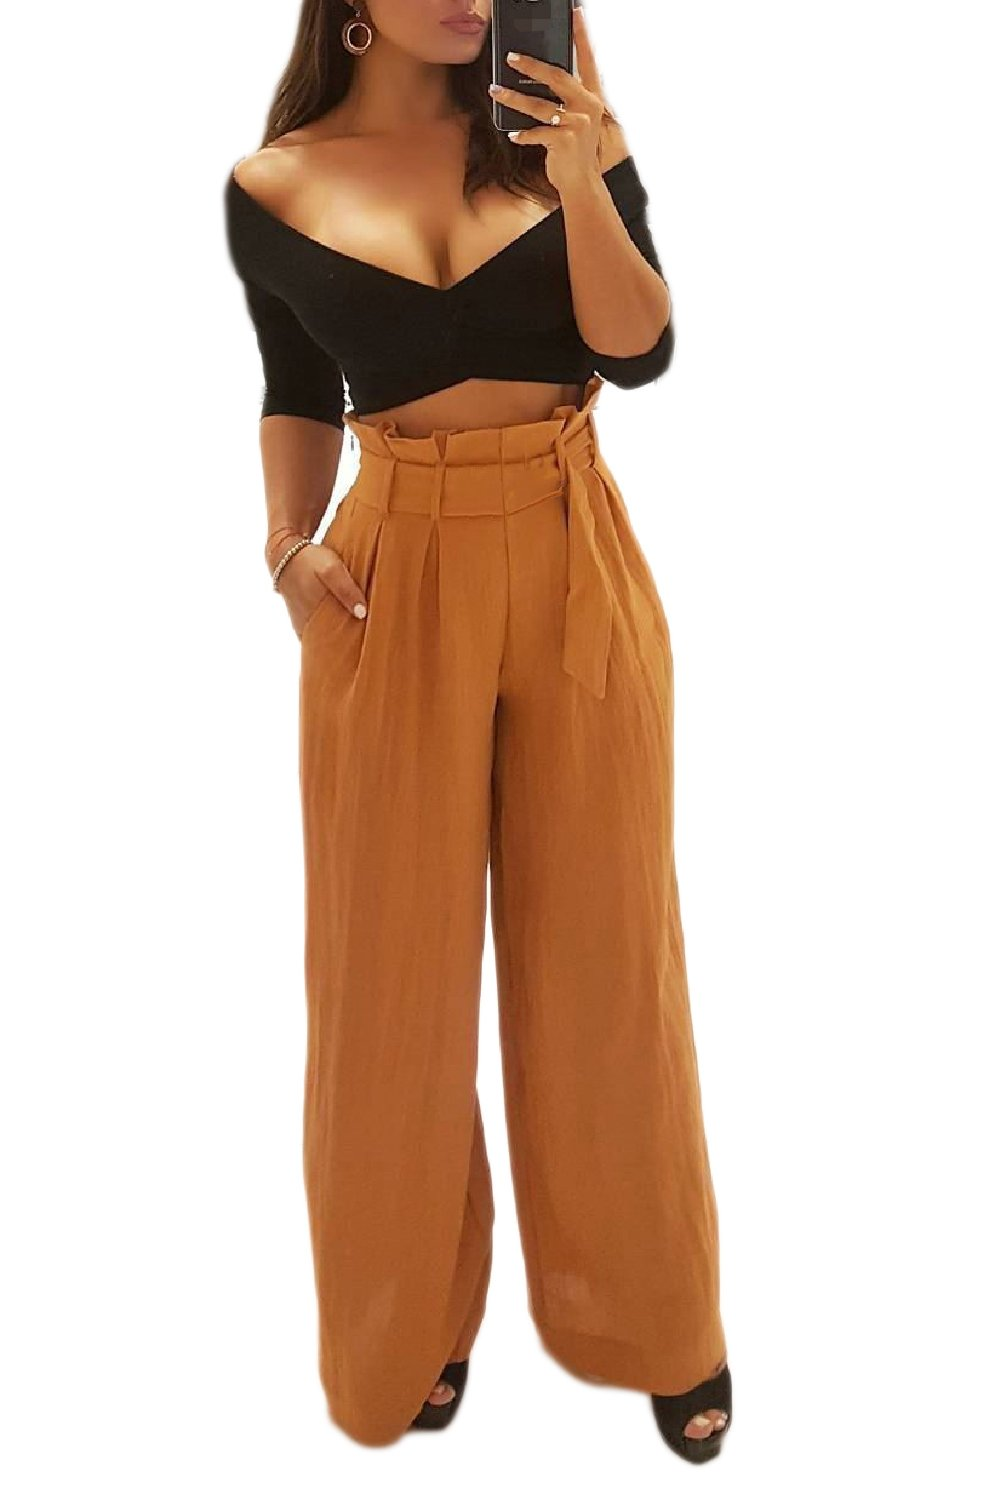 Vemubapis Women Retro Style High Wiast Paper Bags Wide Pants with Belt Yellow S